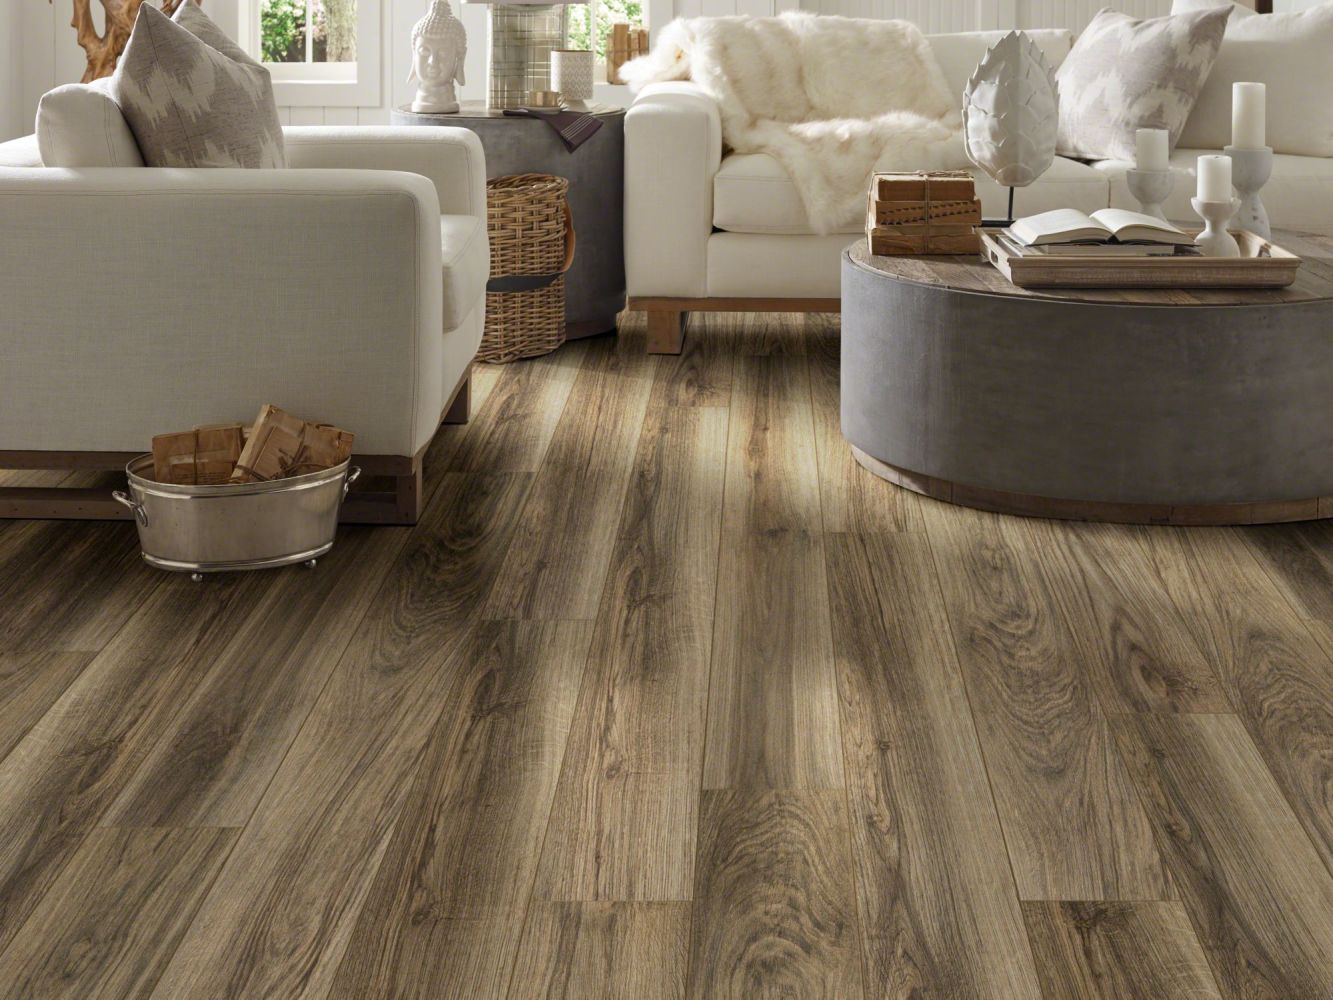 Shaw Floors Resilient Property Solutions Lazio Plus Riva 00165_VE230